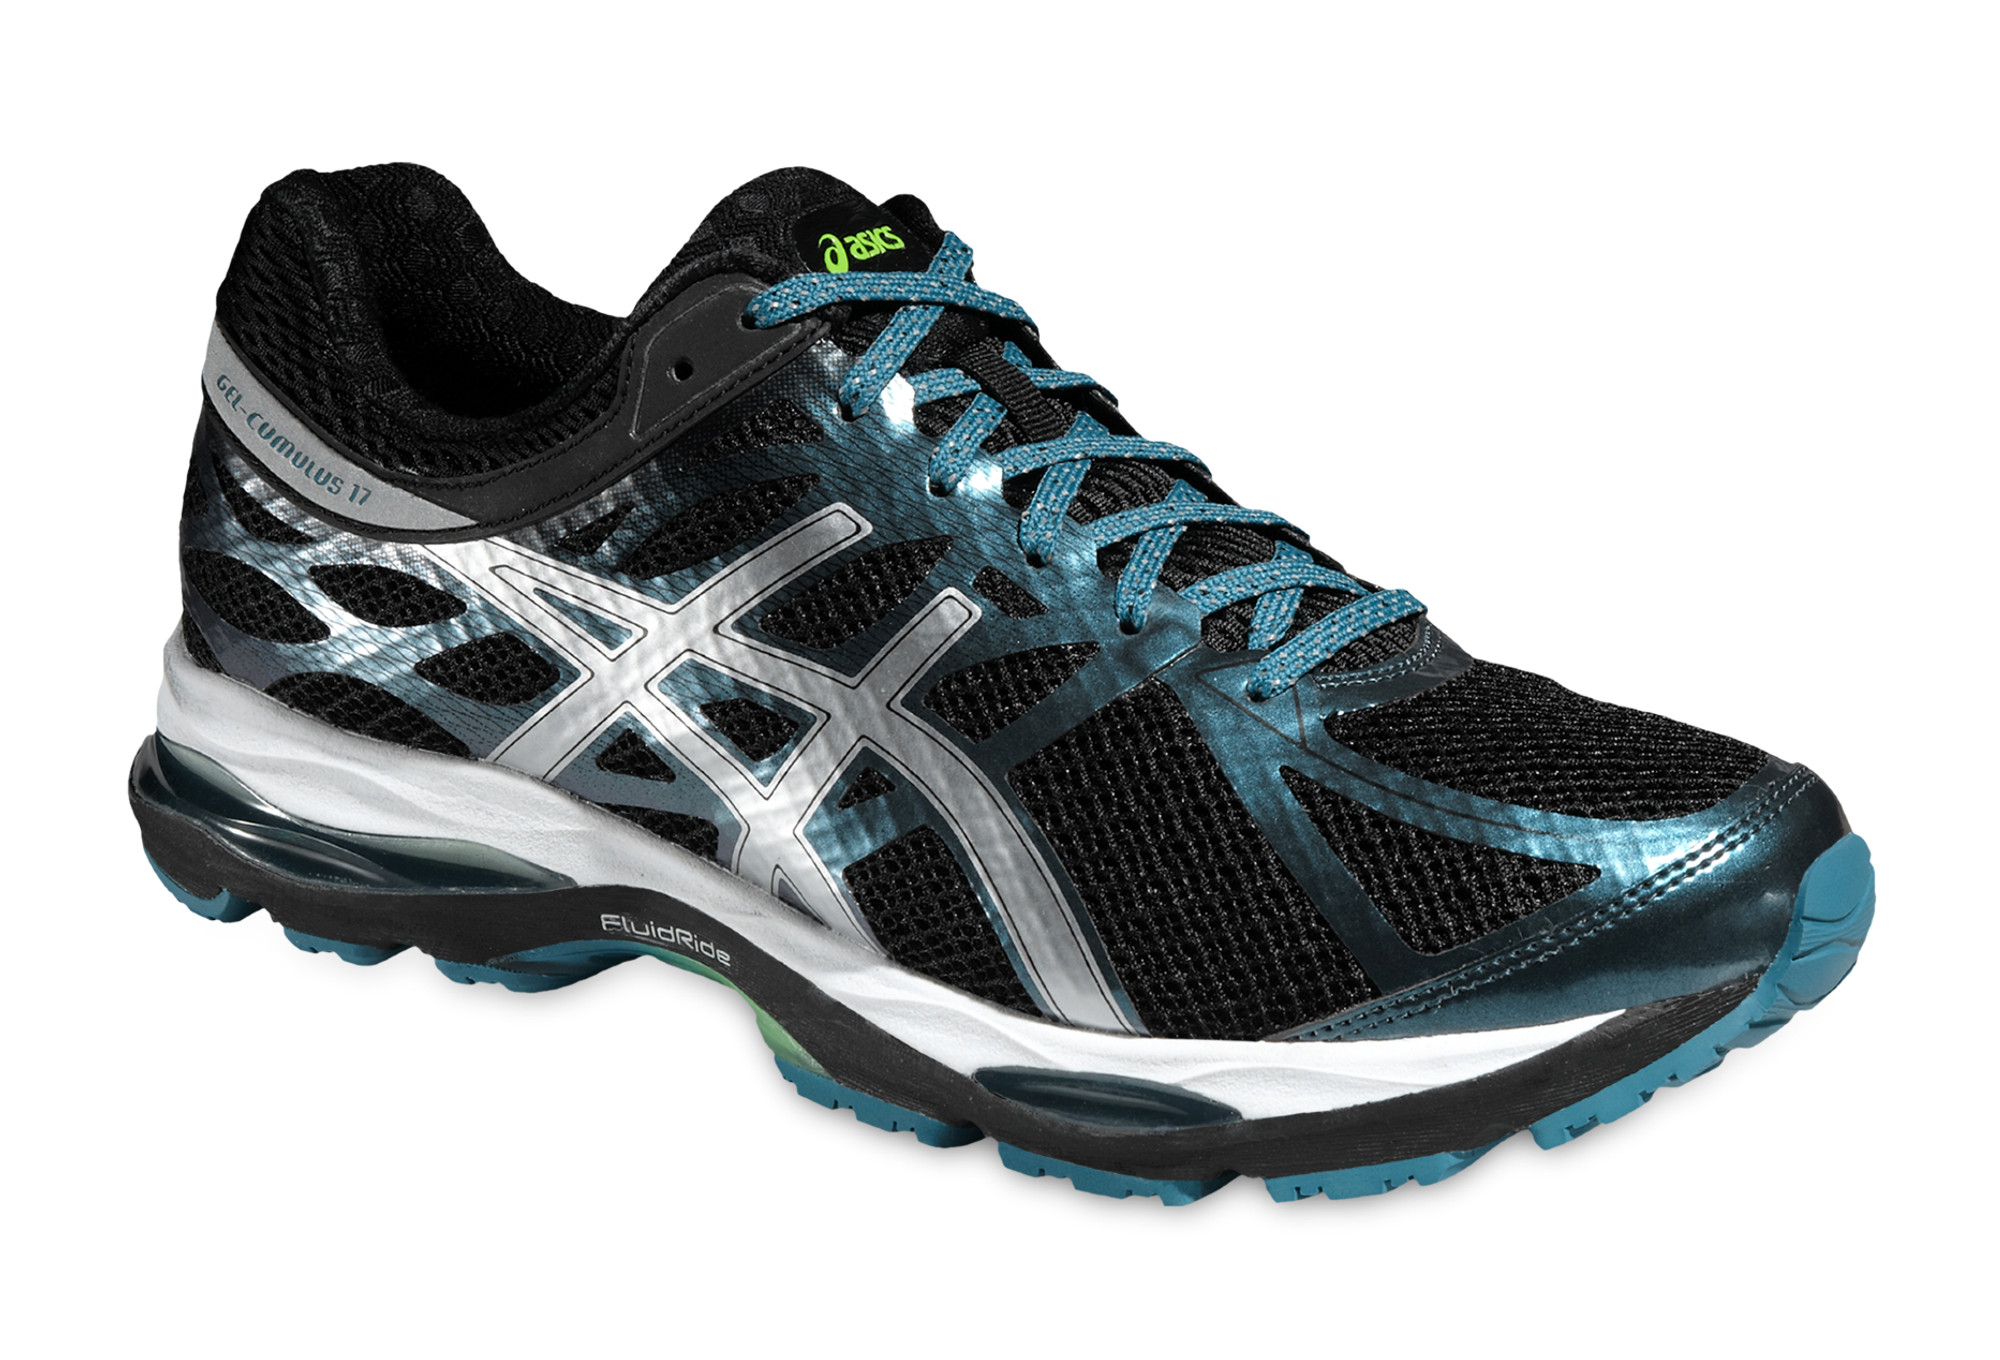 bas prix 64d3e 584cb ASICS Running Shoes Gel CUMULUS 17 Lite-Show Black Blue White